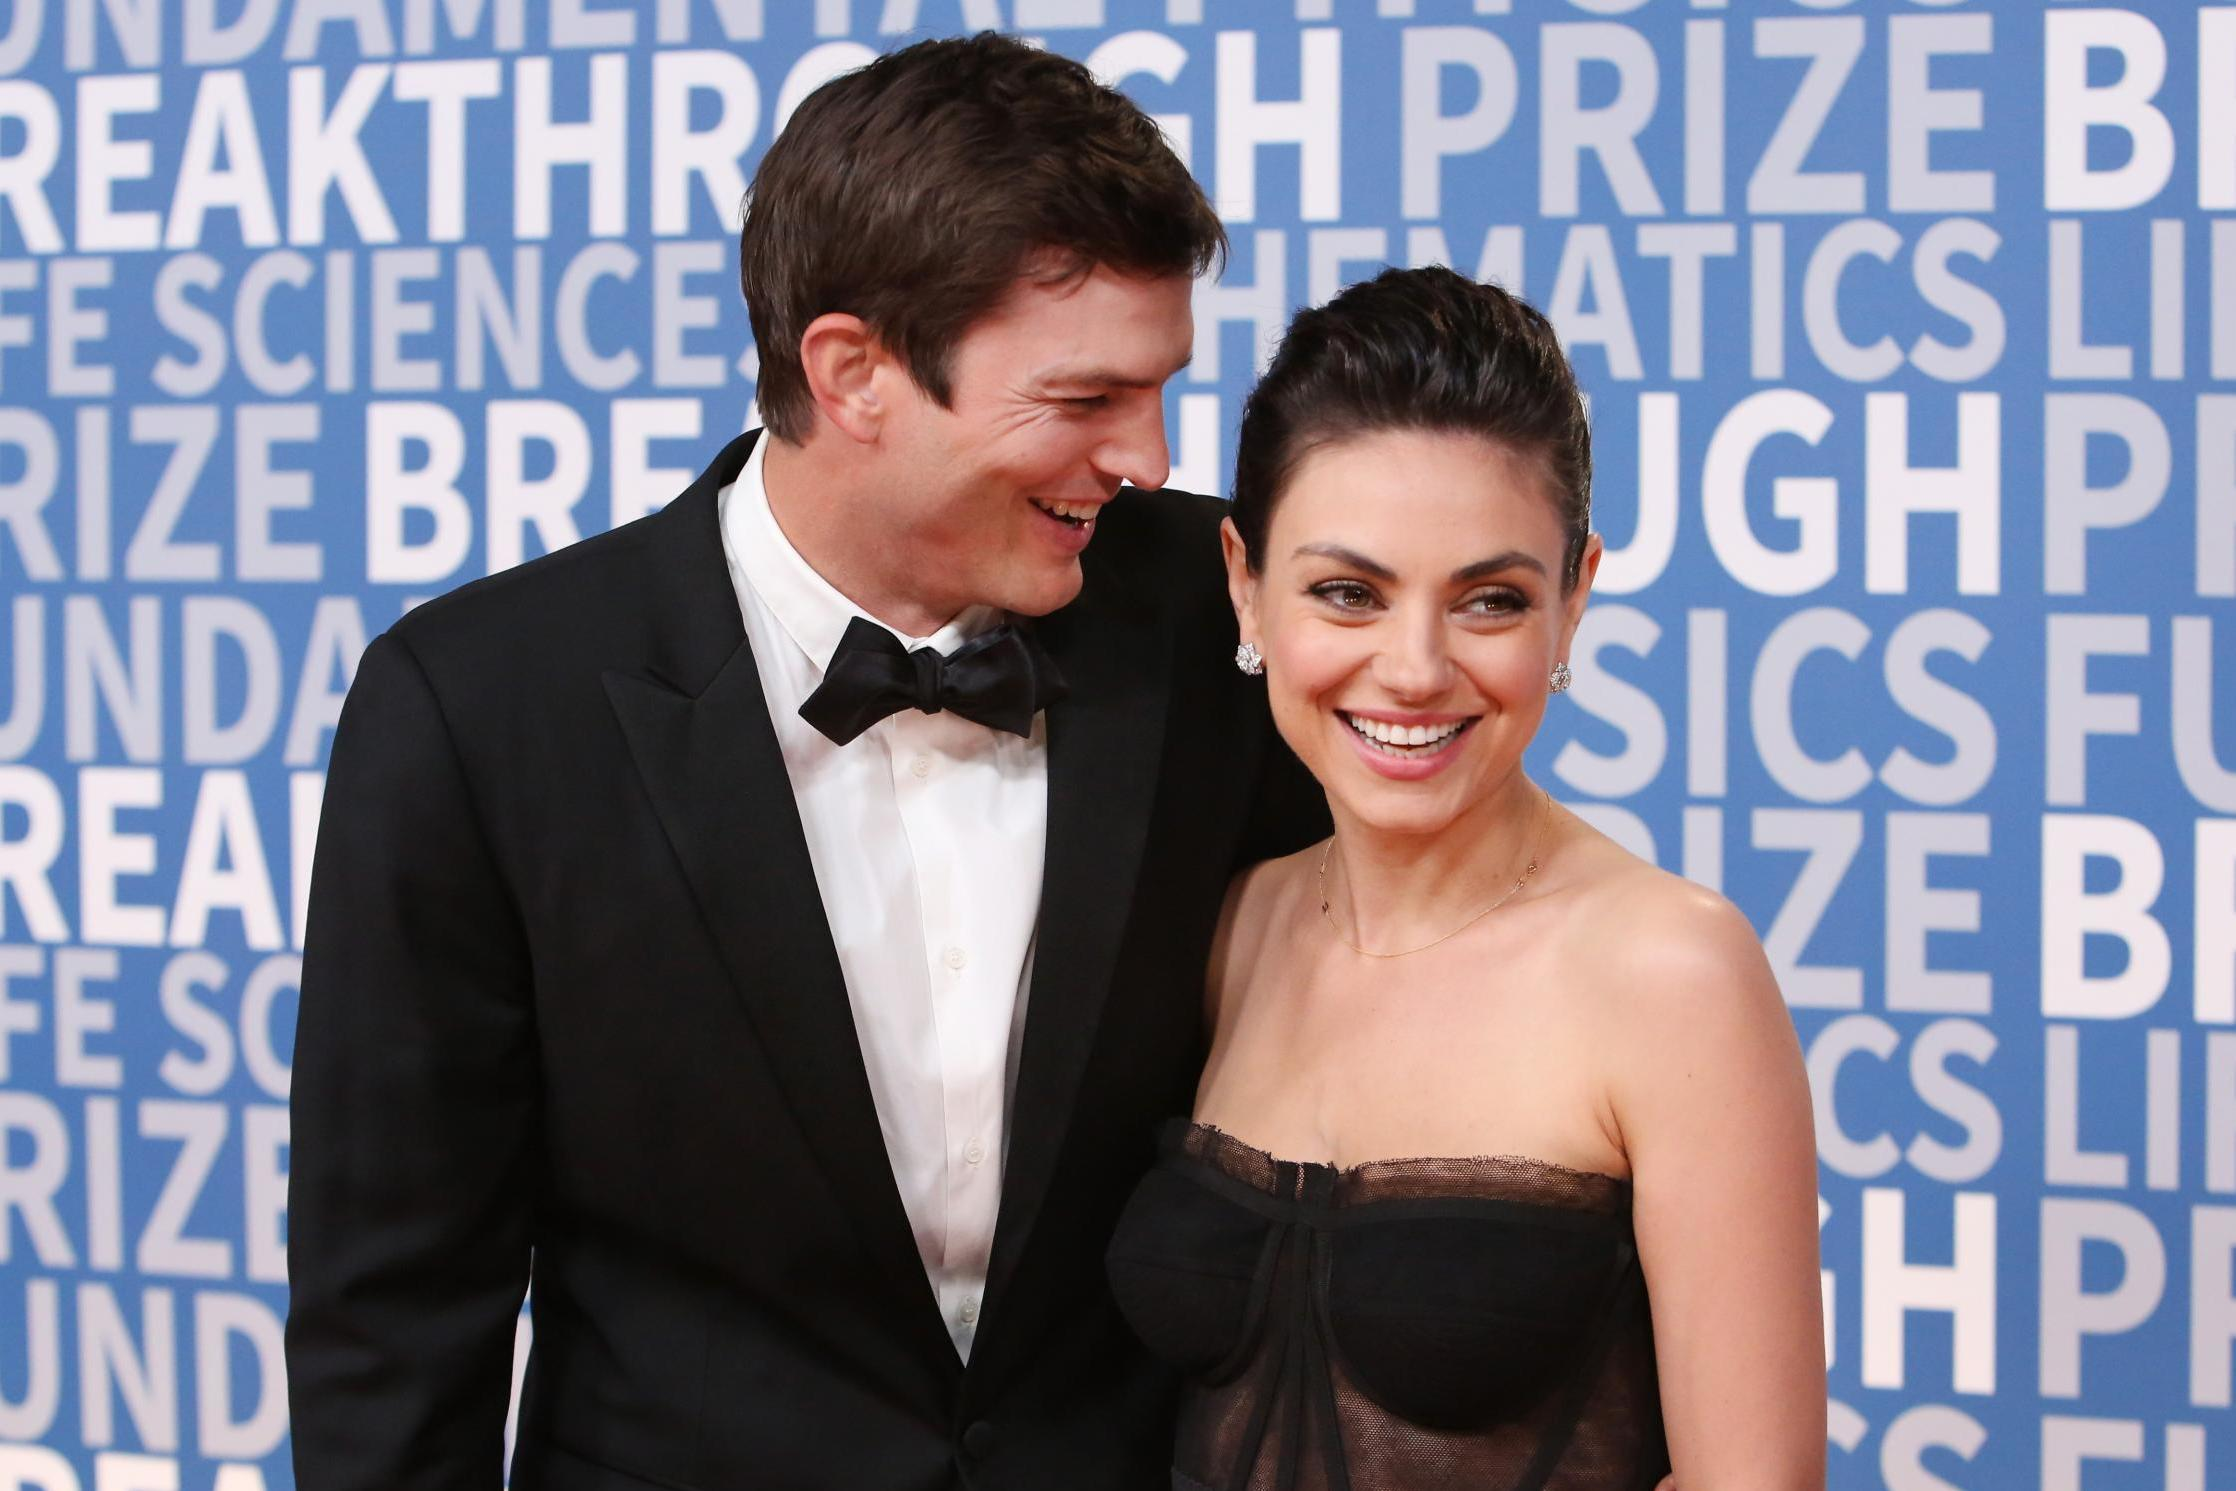 Austin Kutcher along with his wife, Mila Kunis made a video in which they mocked about the news and posted in on Instagram.